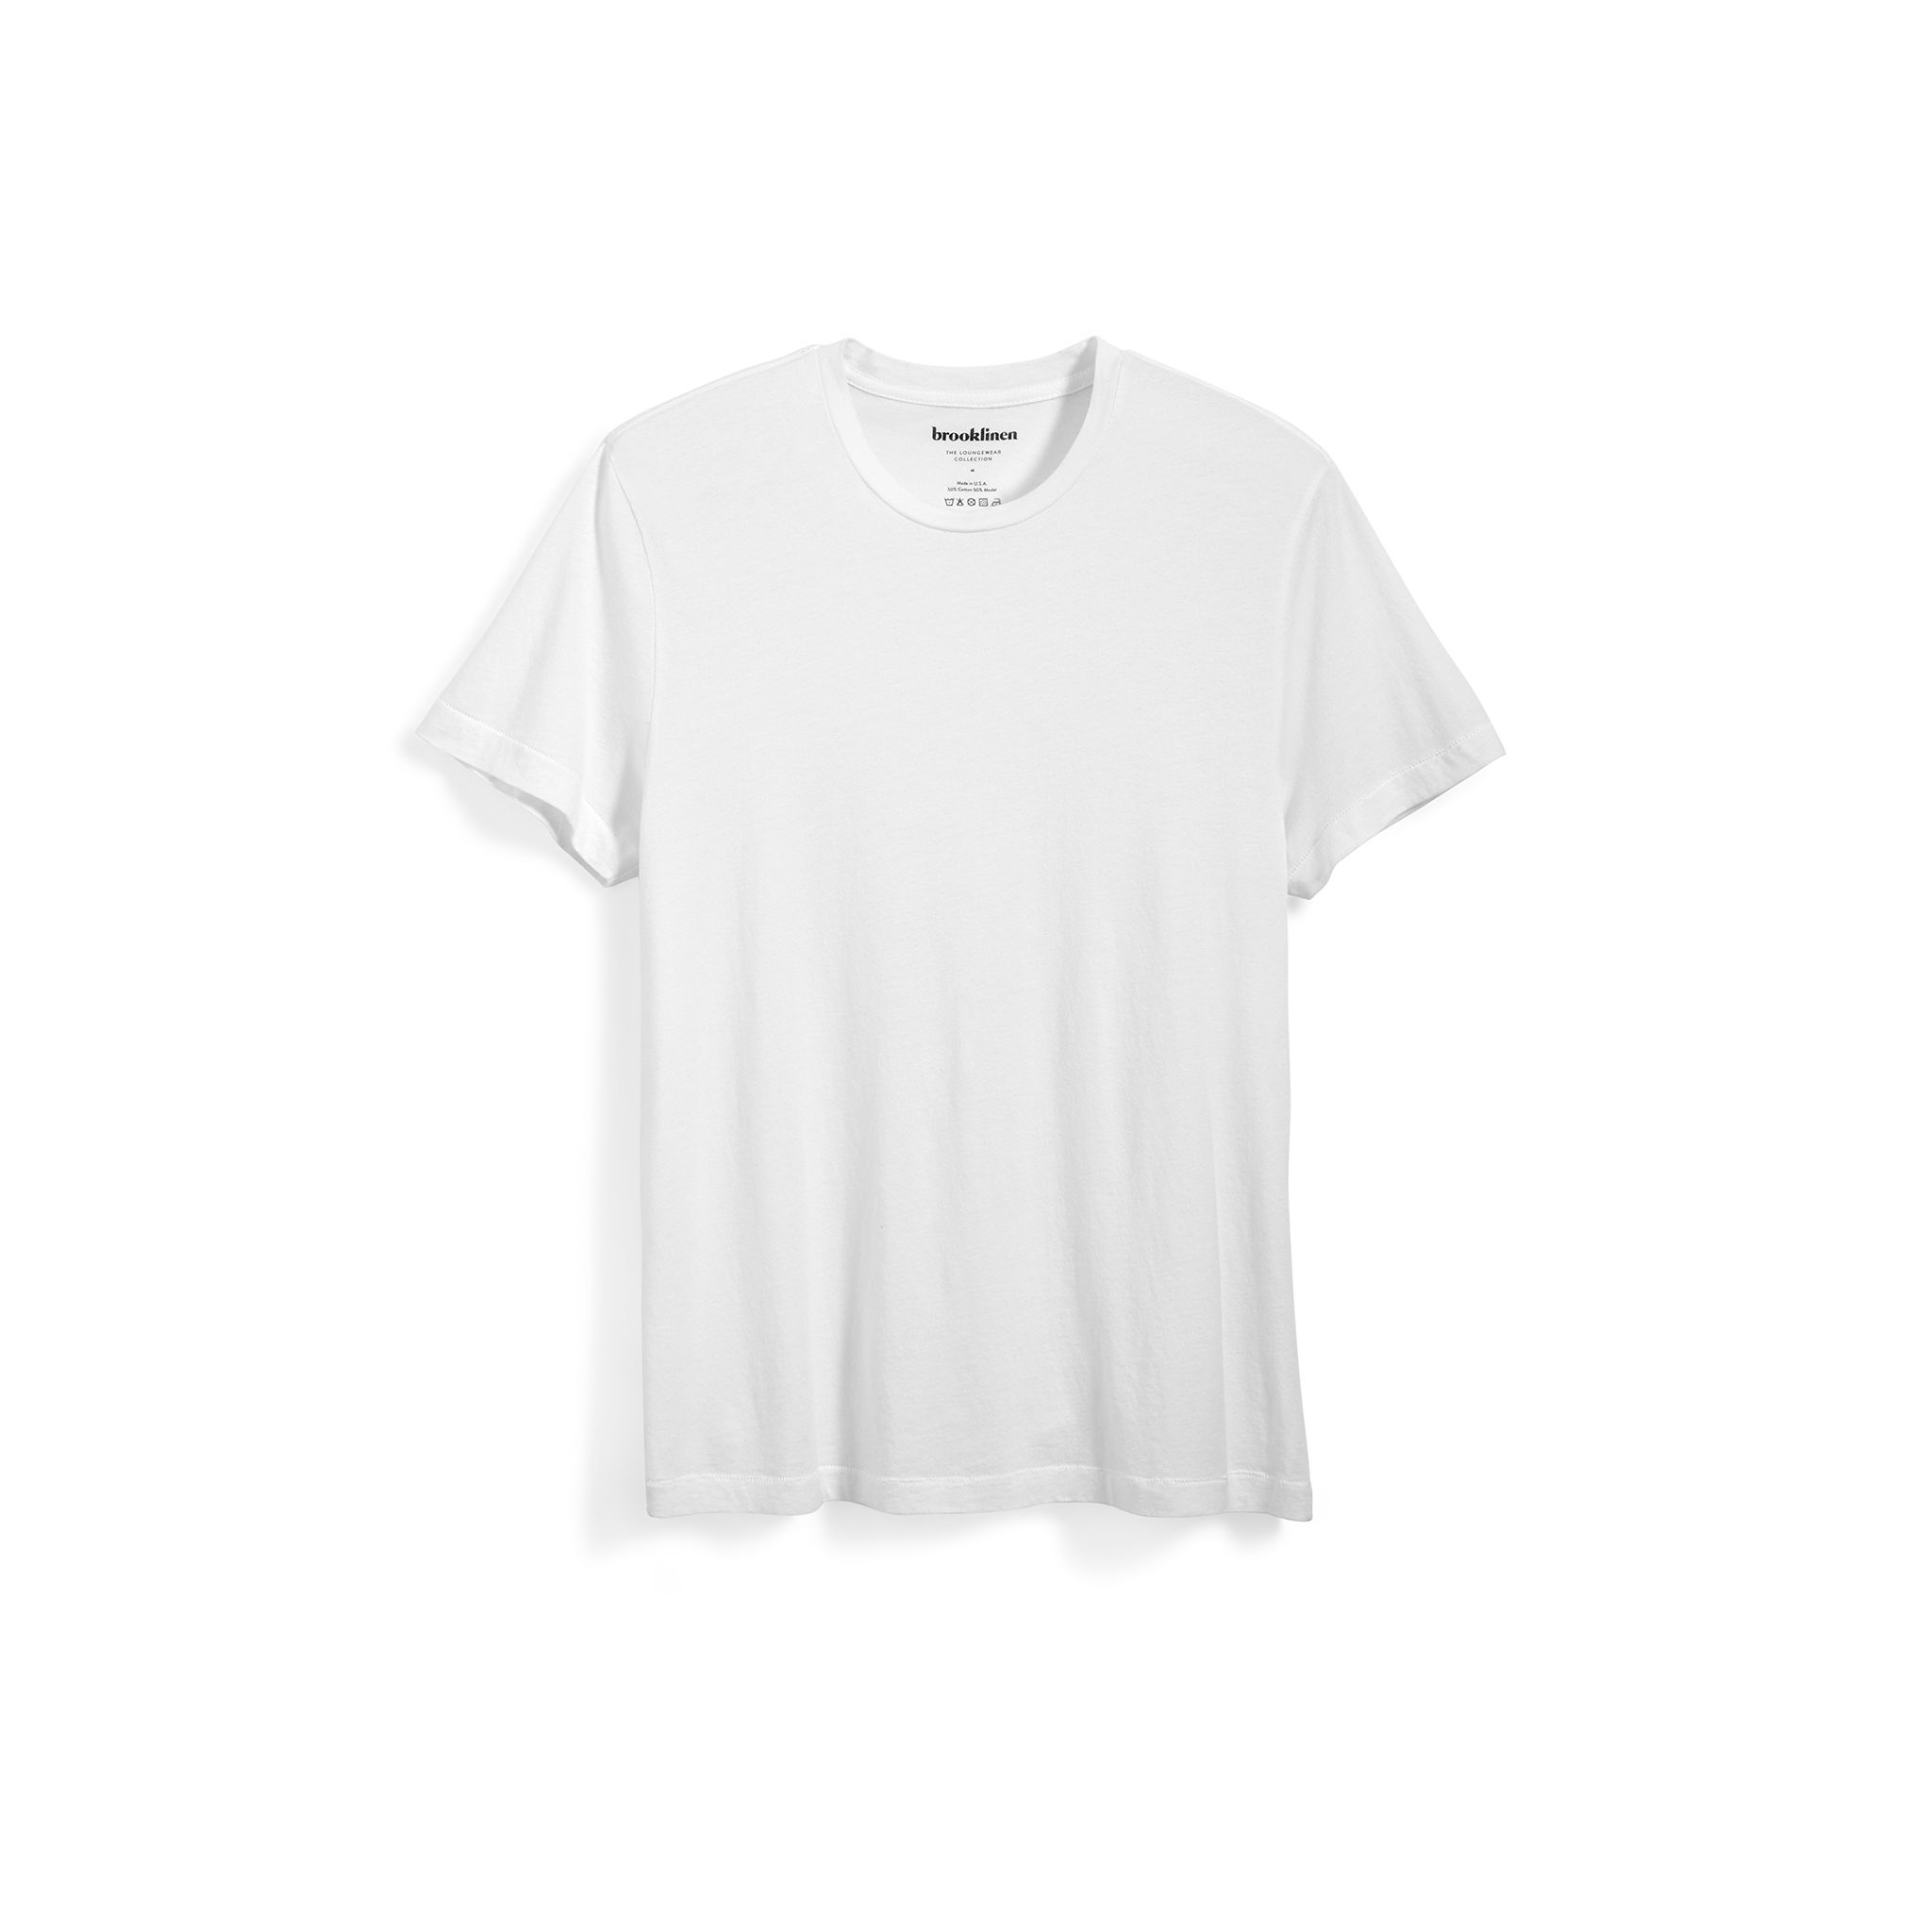 The Prospect Tee in White